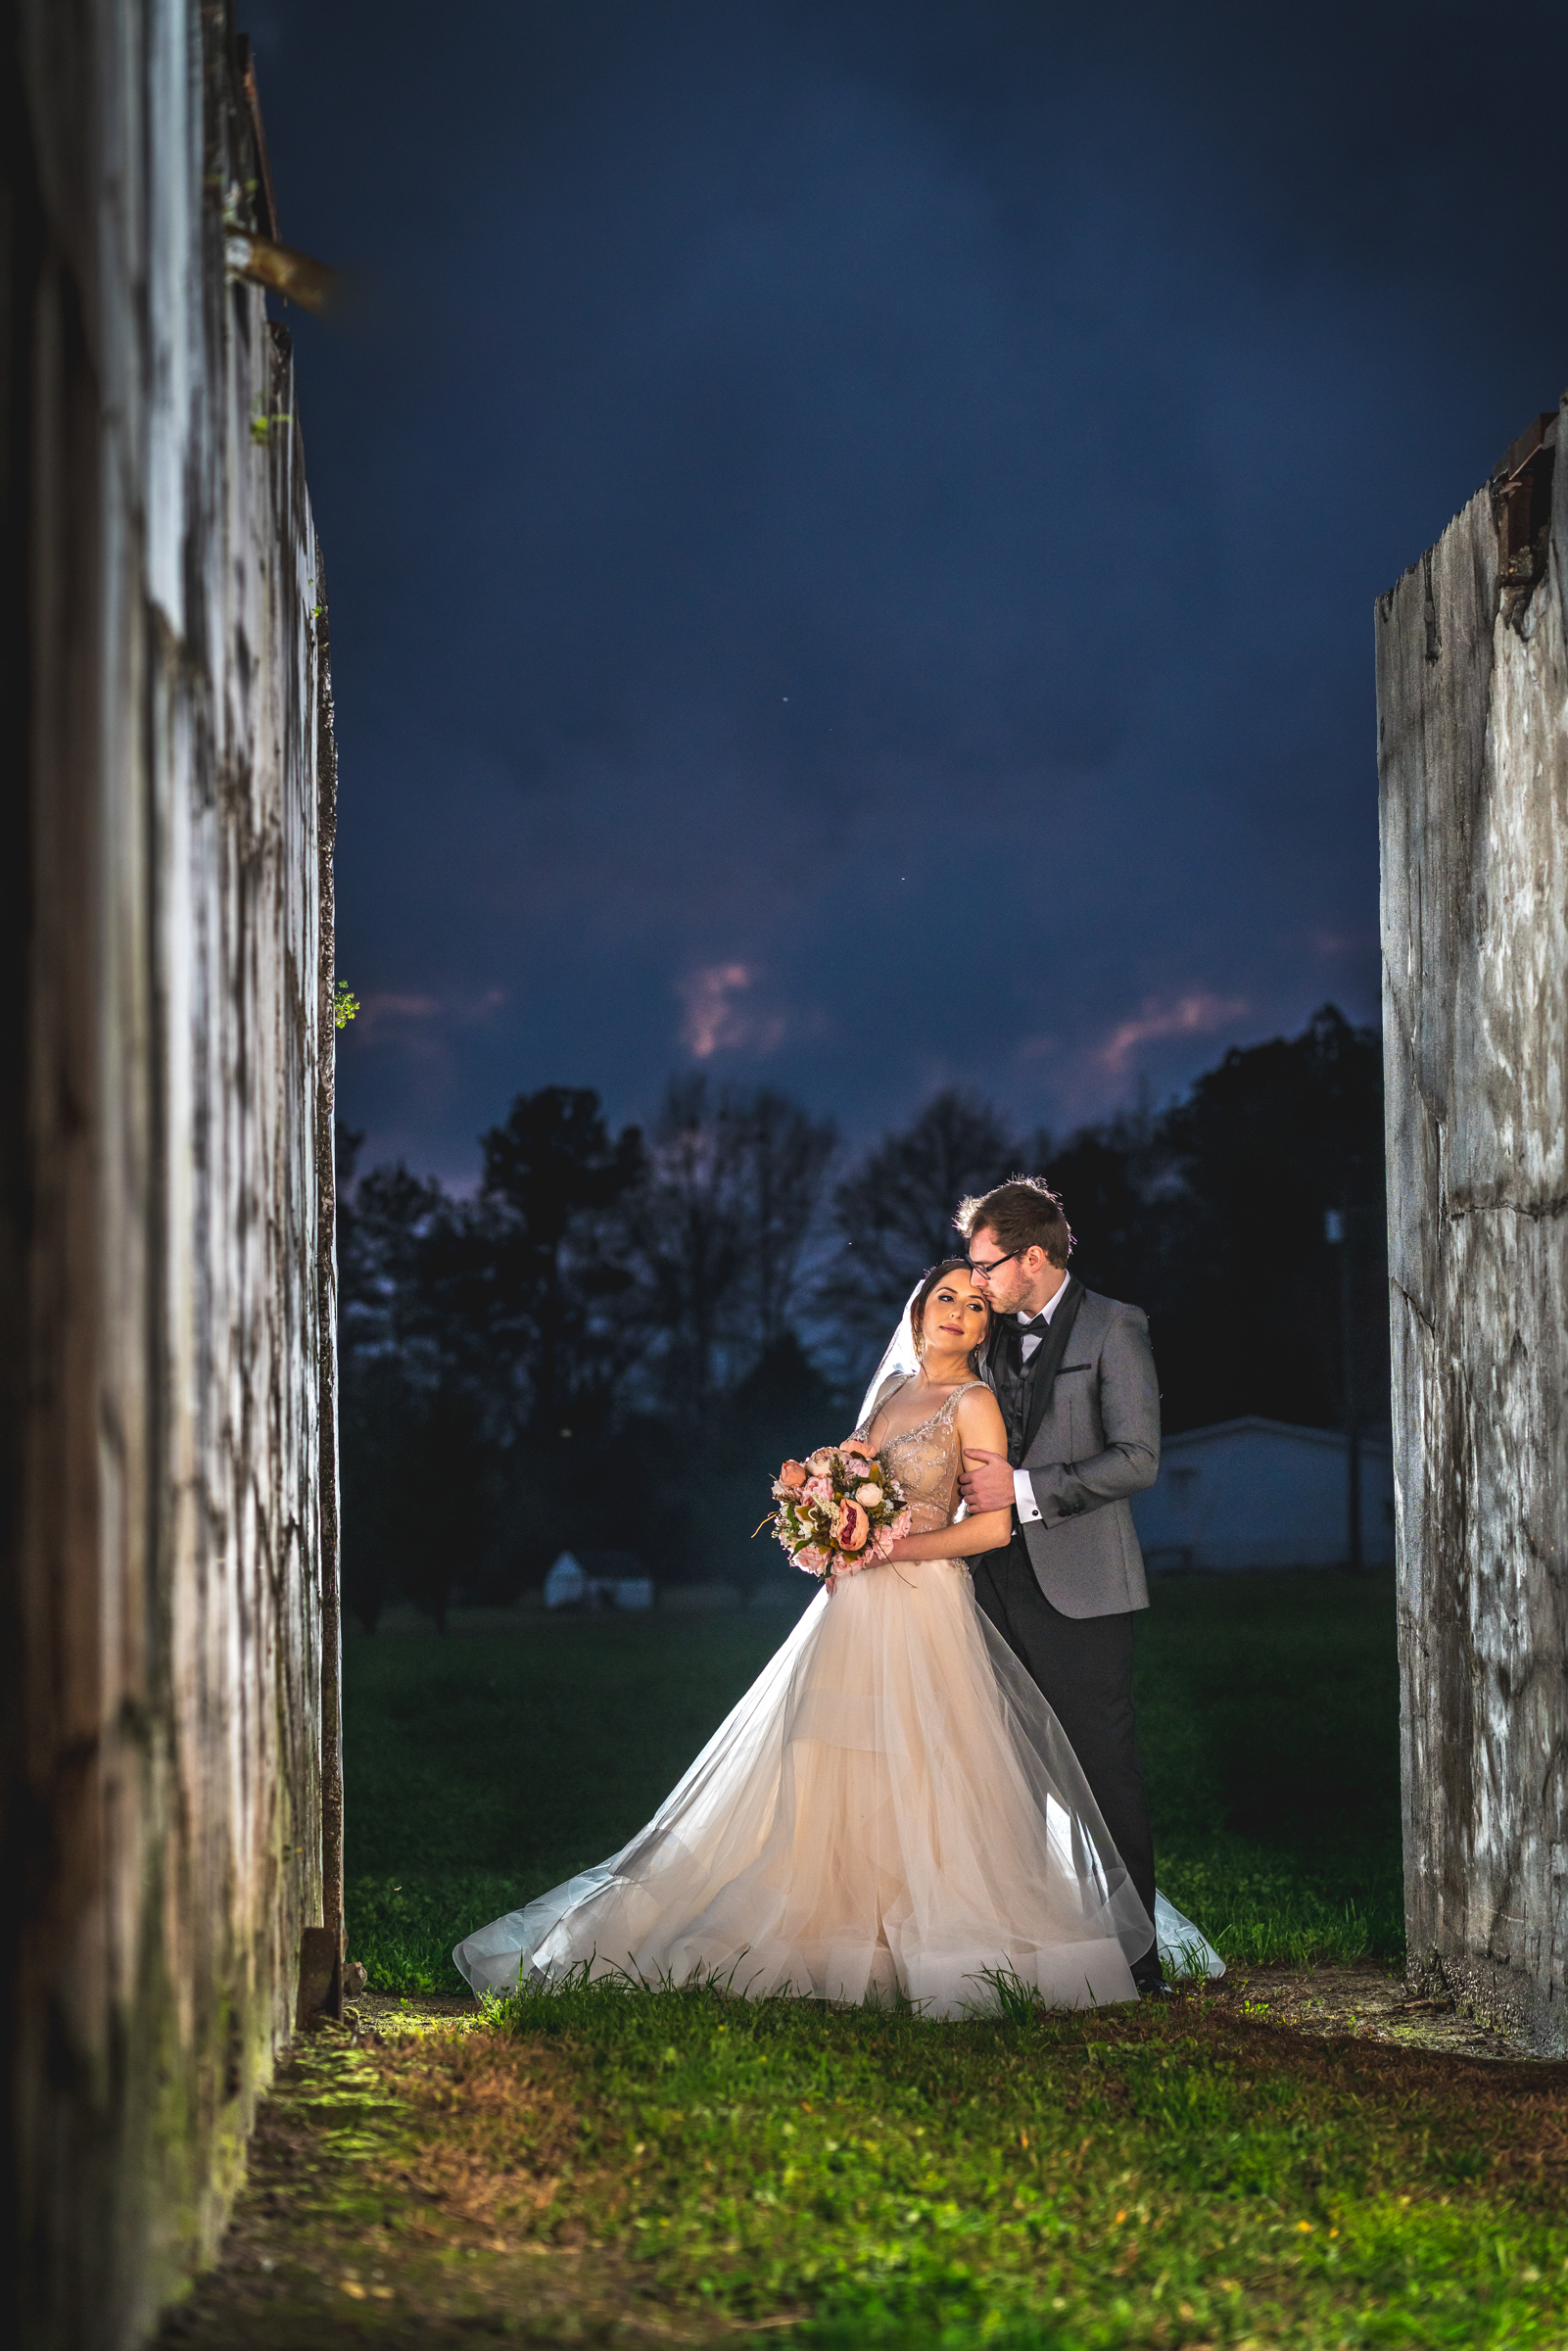 Wedding-couple-night-pensacola-Photography.jpg